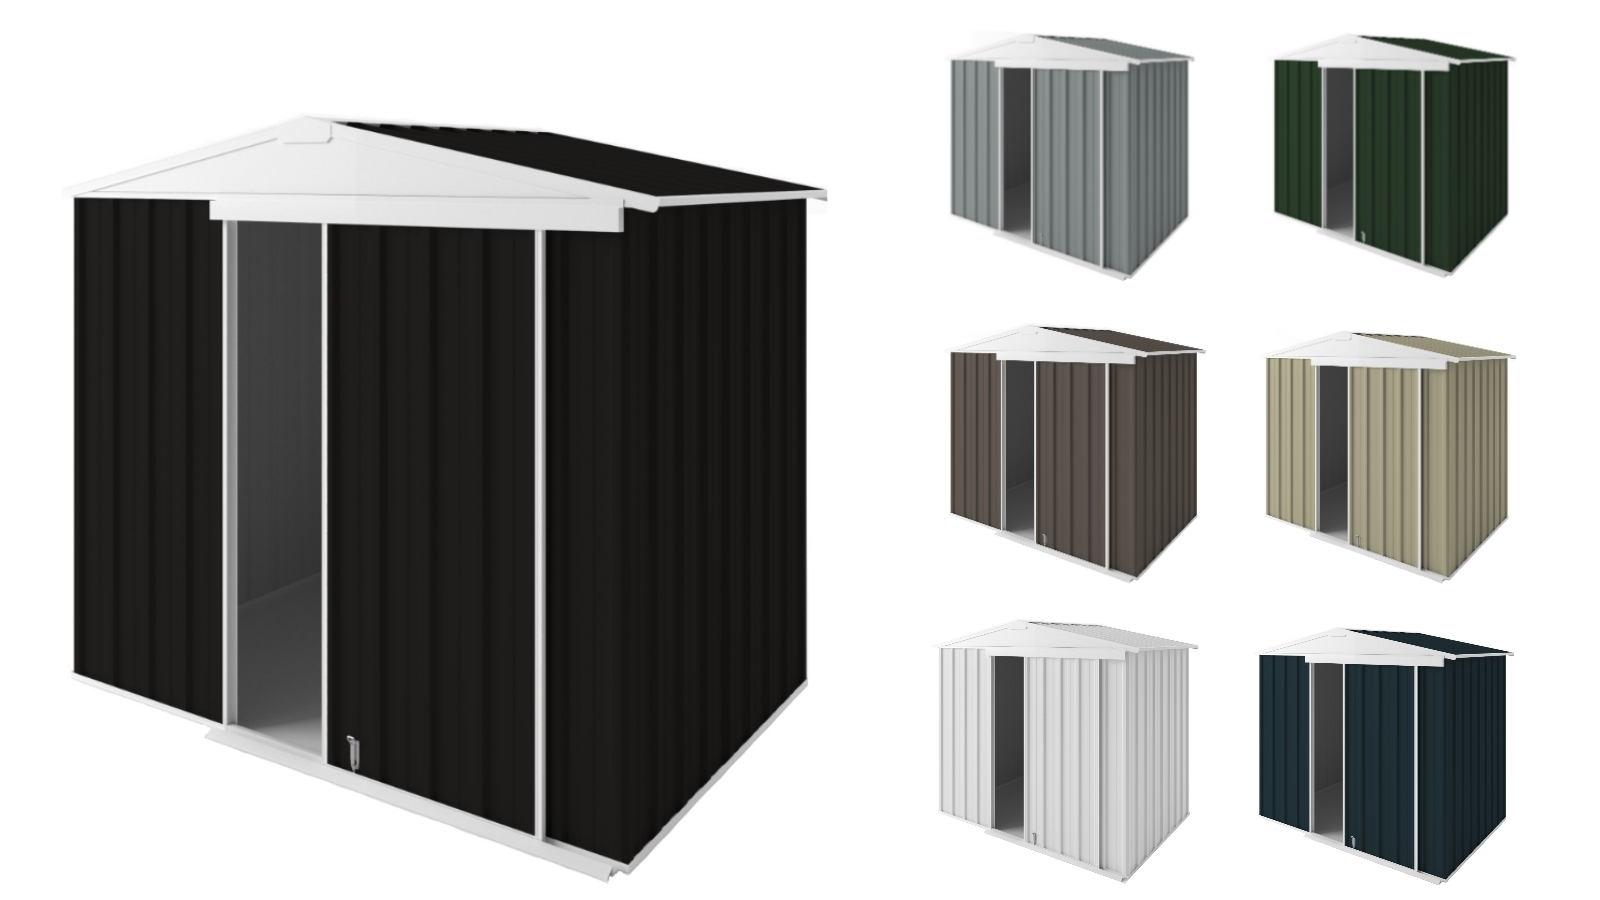 Buy EasyShed Gable Slider Roof Garden Shed   Harvey Norman AU on factory roof, loft roof, boat roof, well roof, building roof, bicycle roof, hotel roof, tractor roof, white roof, office roof, cabin roof, warehouse roof, farmhouse roof, dog roof, apartment roof, hospital roof, cottage roof, city roof, tenement roof, adobe roof,